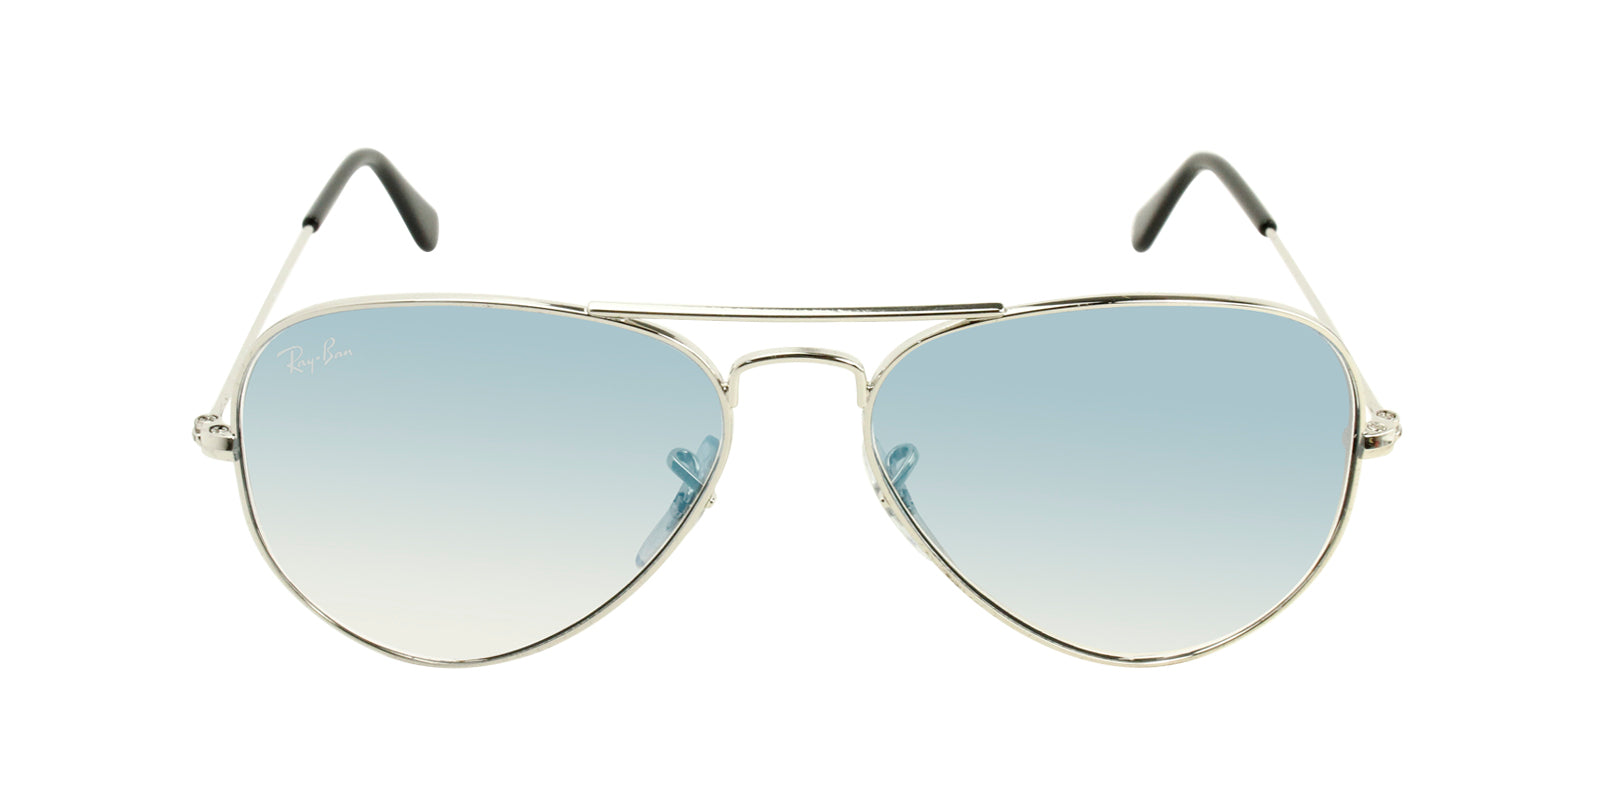 66800f24671 Ray Ban Silver Aviator Crystal Gradient Light Blue Sunglasses RB ...